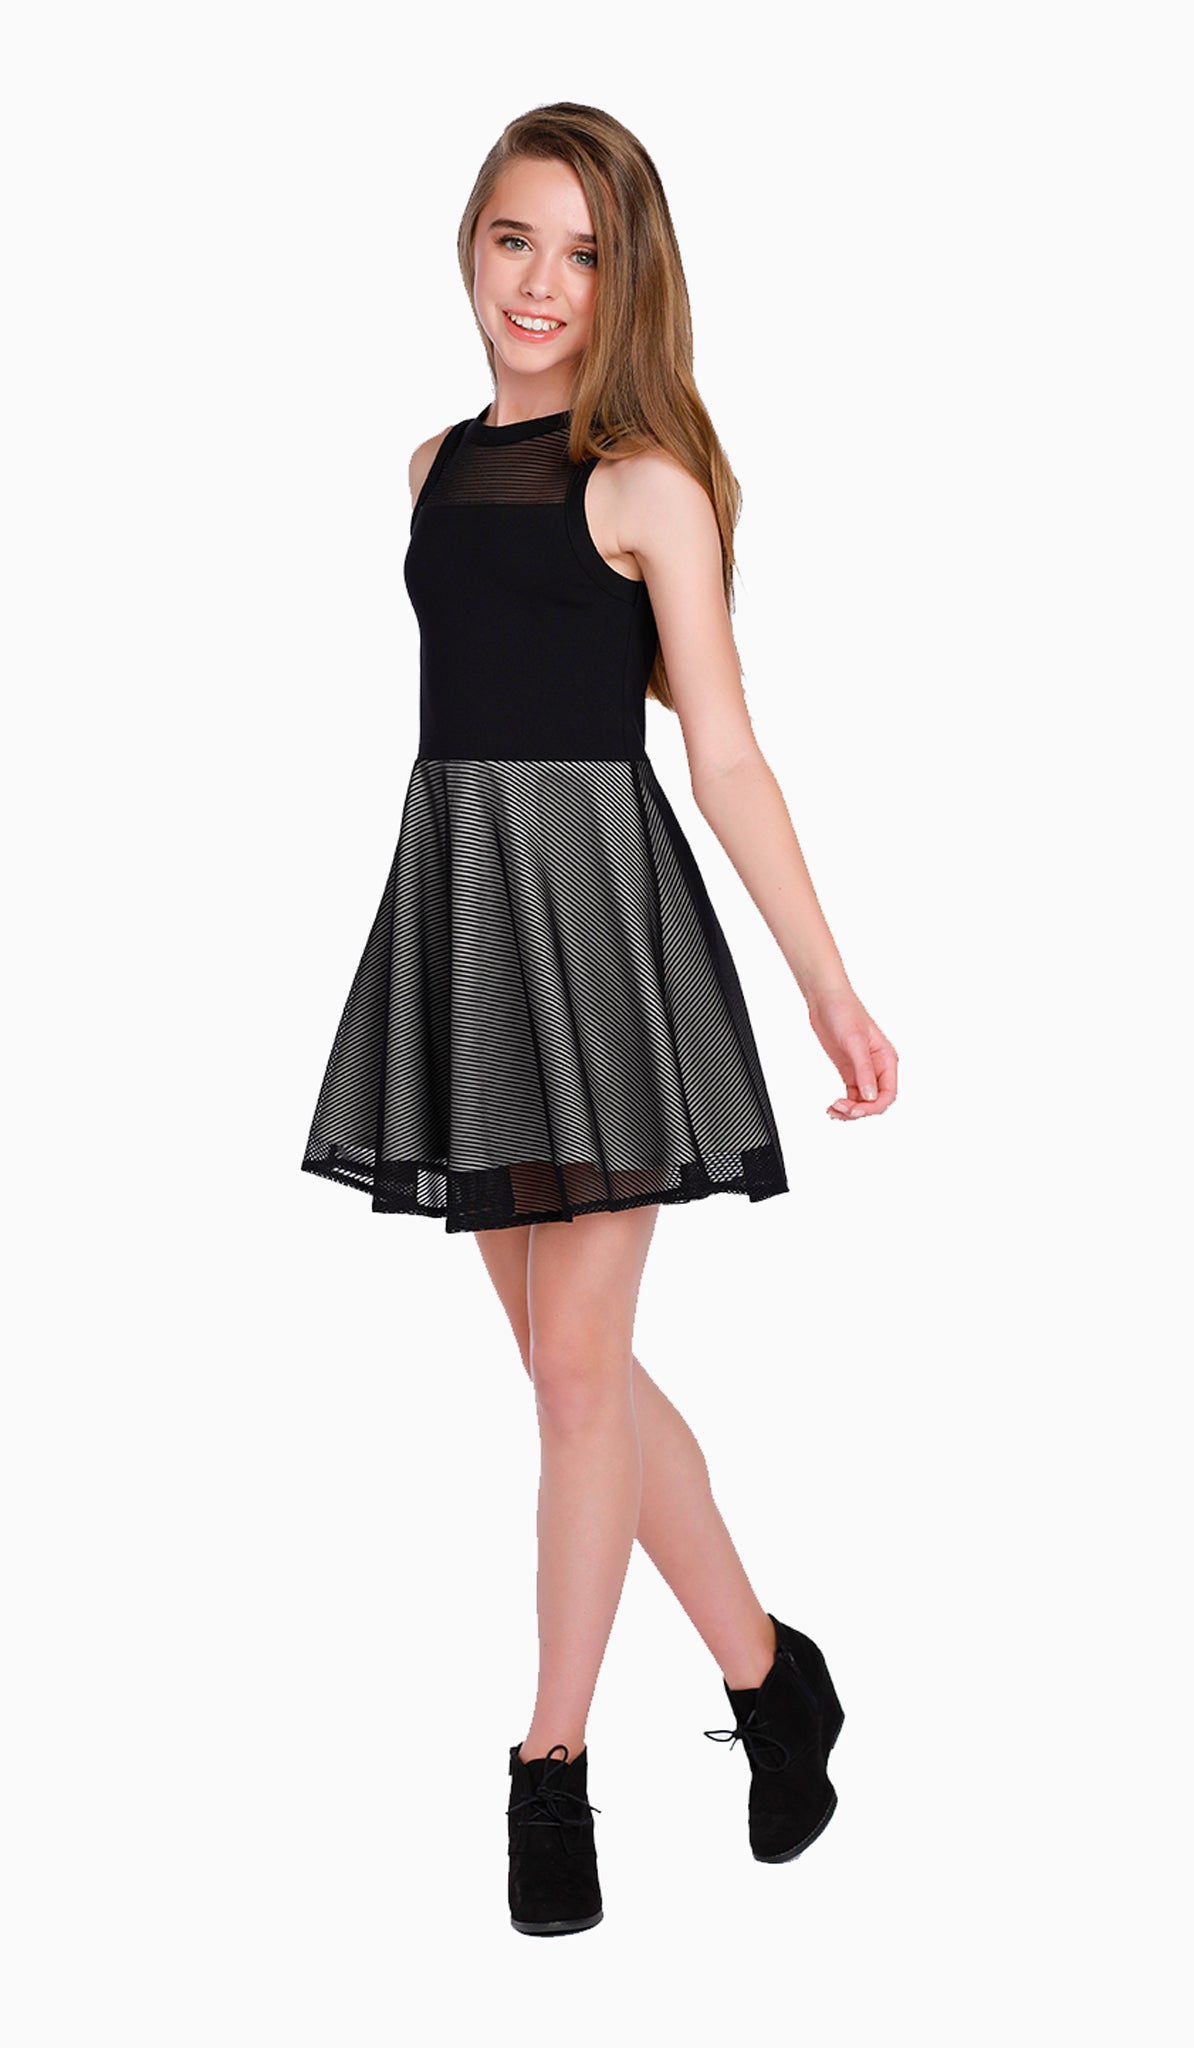 The Sally Miller Eden Dress | Black stretch-knit fit and flare dress with textured stripe mesh yoke and skirt overlay  | Luxury tween dresses & juniors dresses for all occasions and events